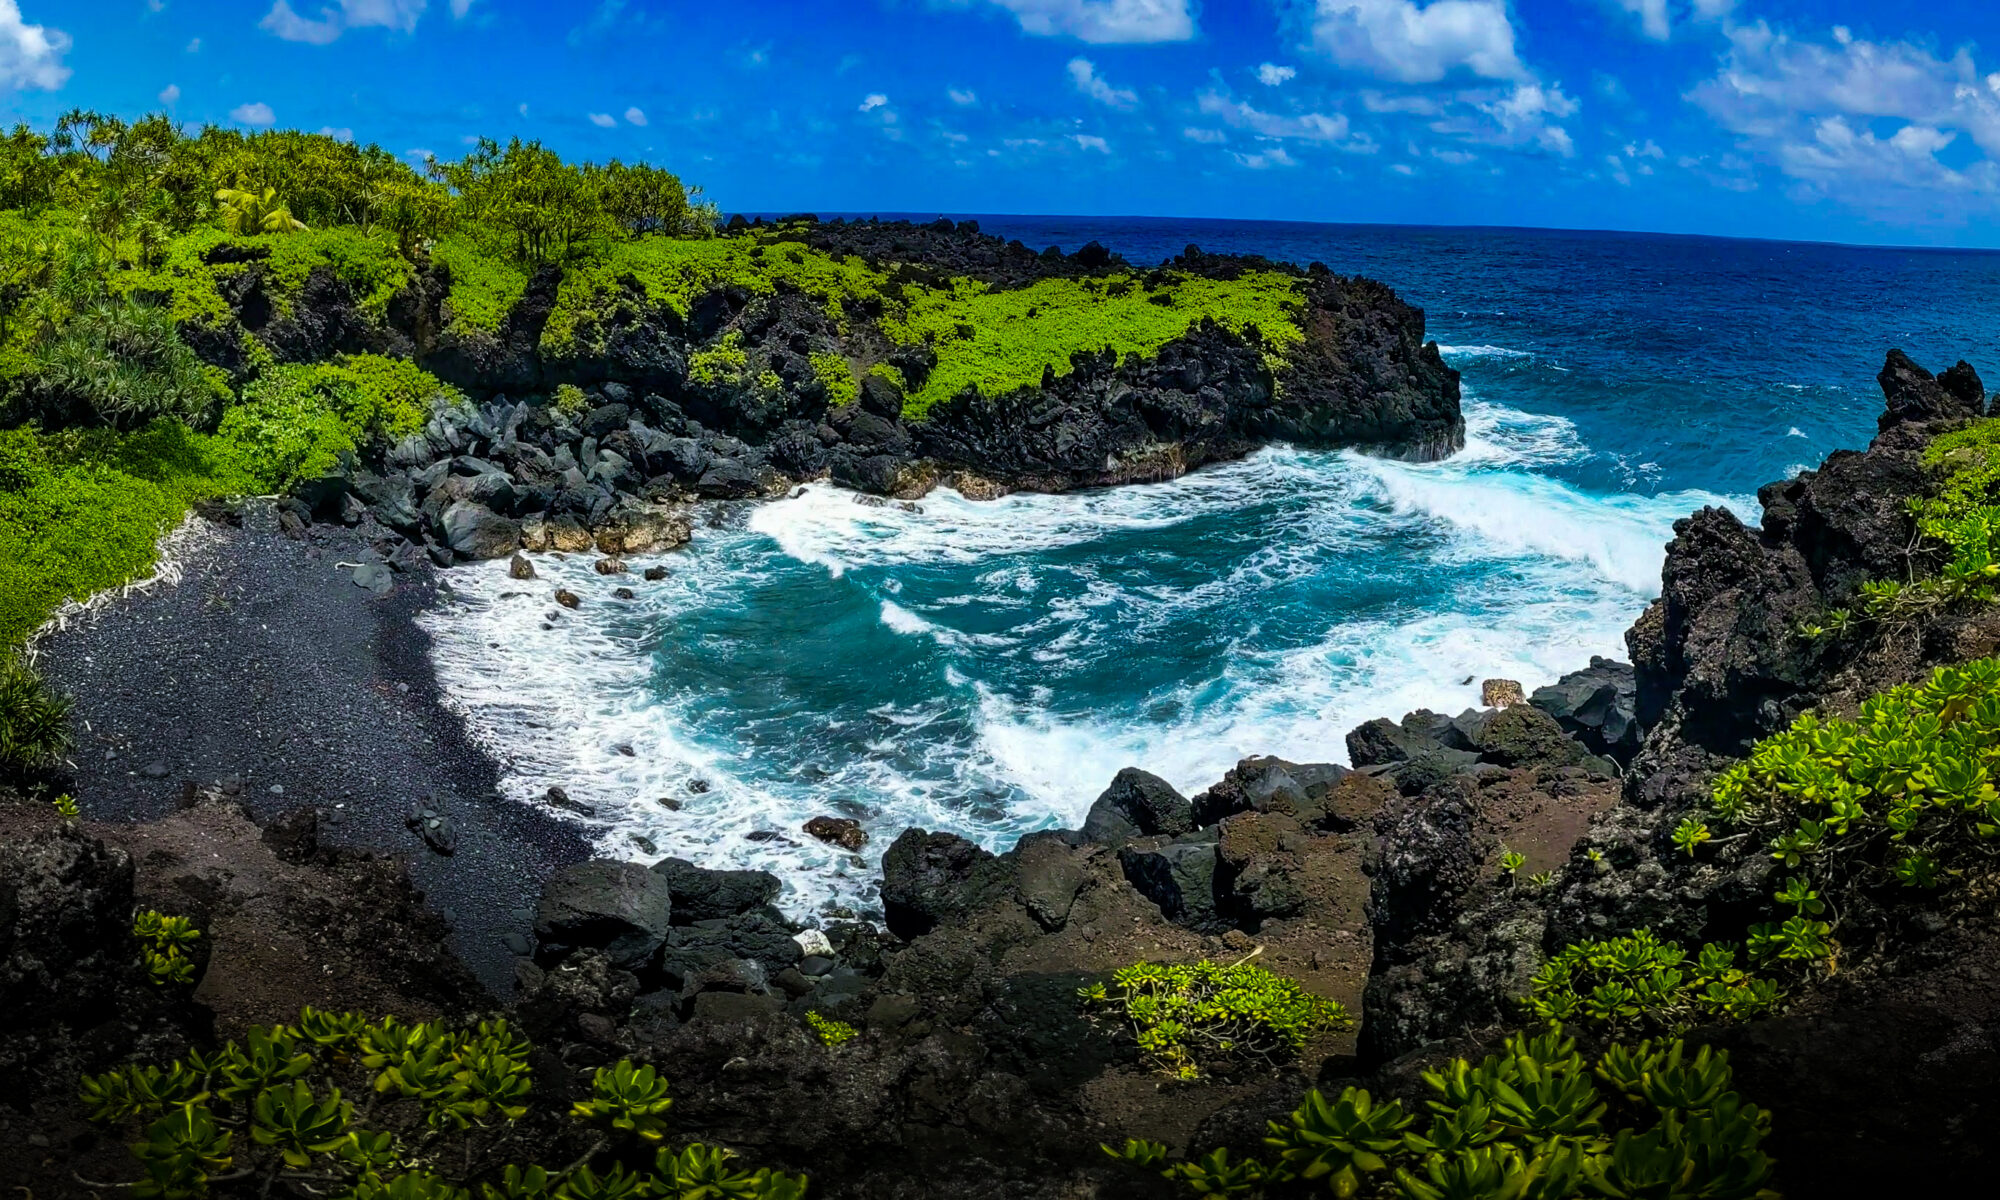 Waianapanapa State Park shore in Maui, Hawaii